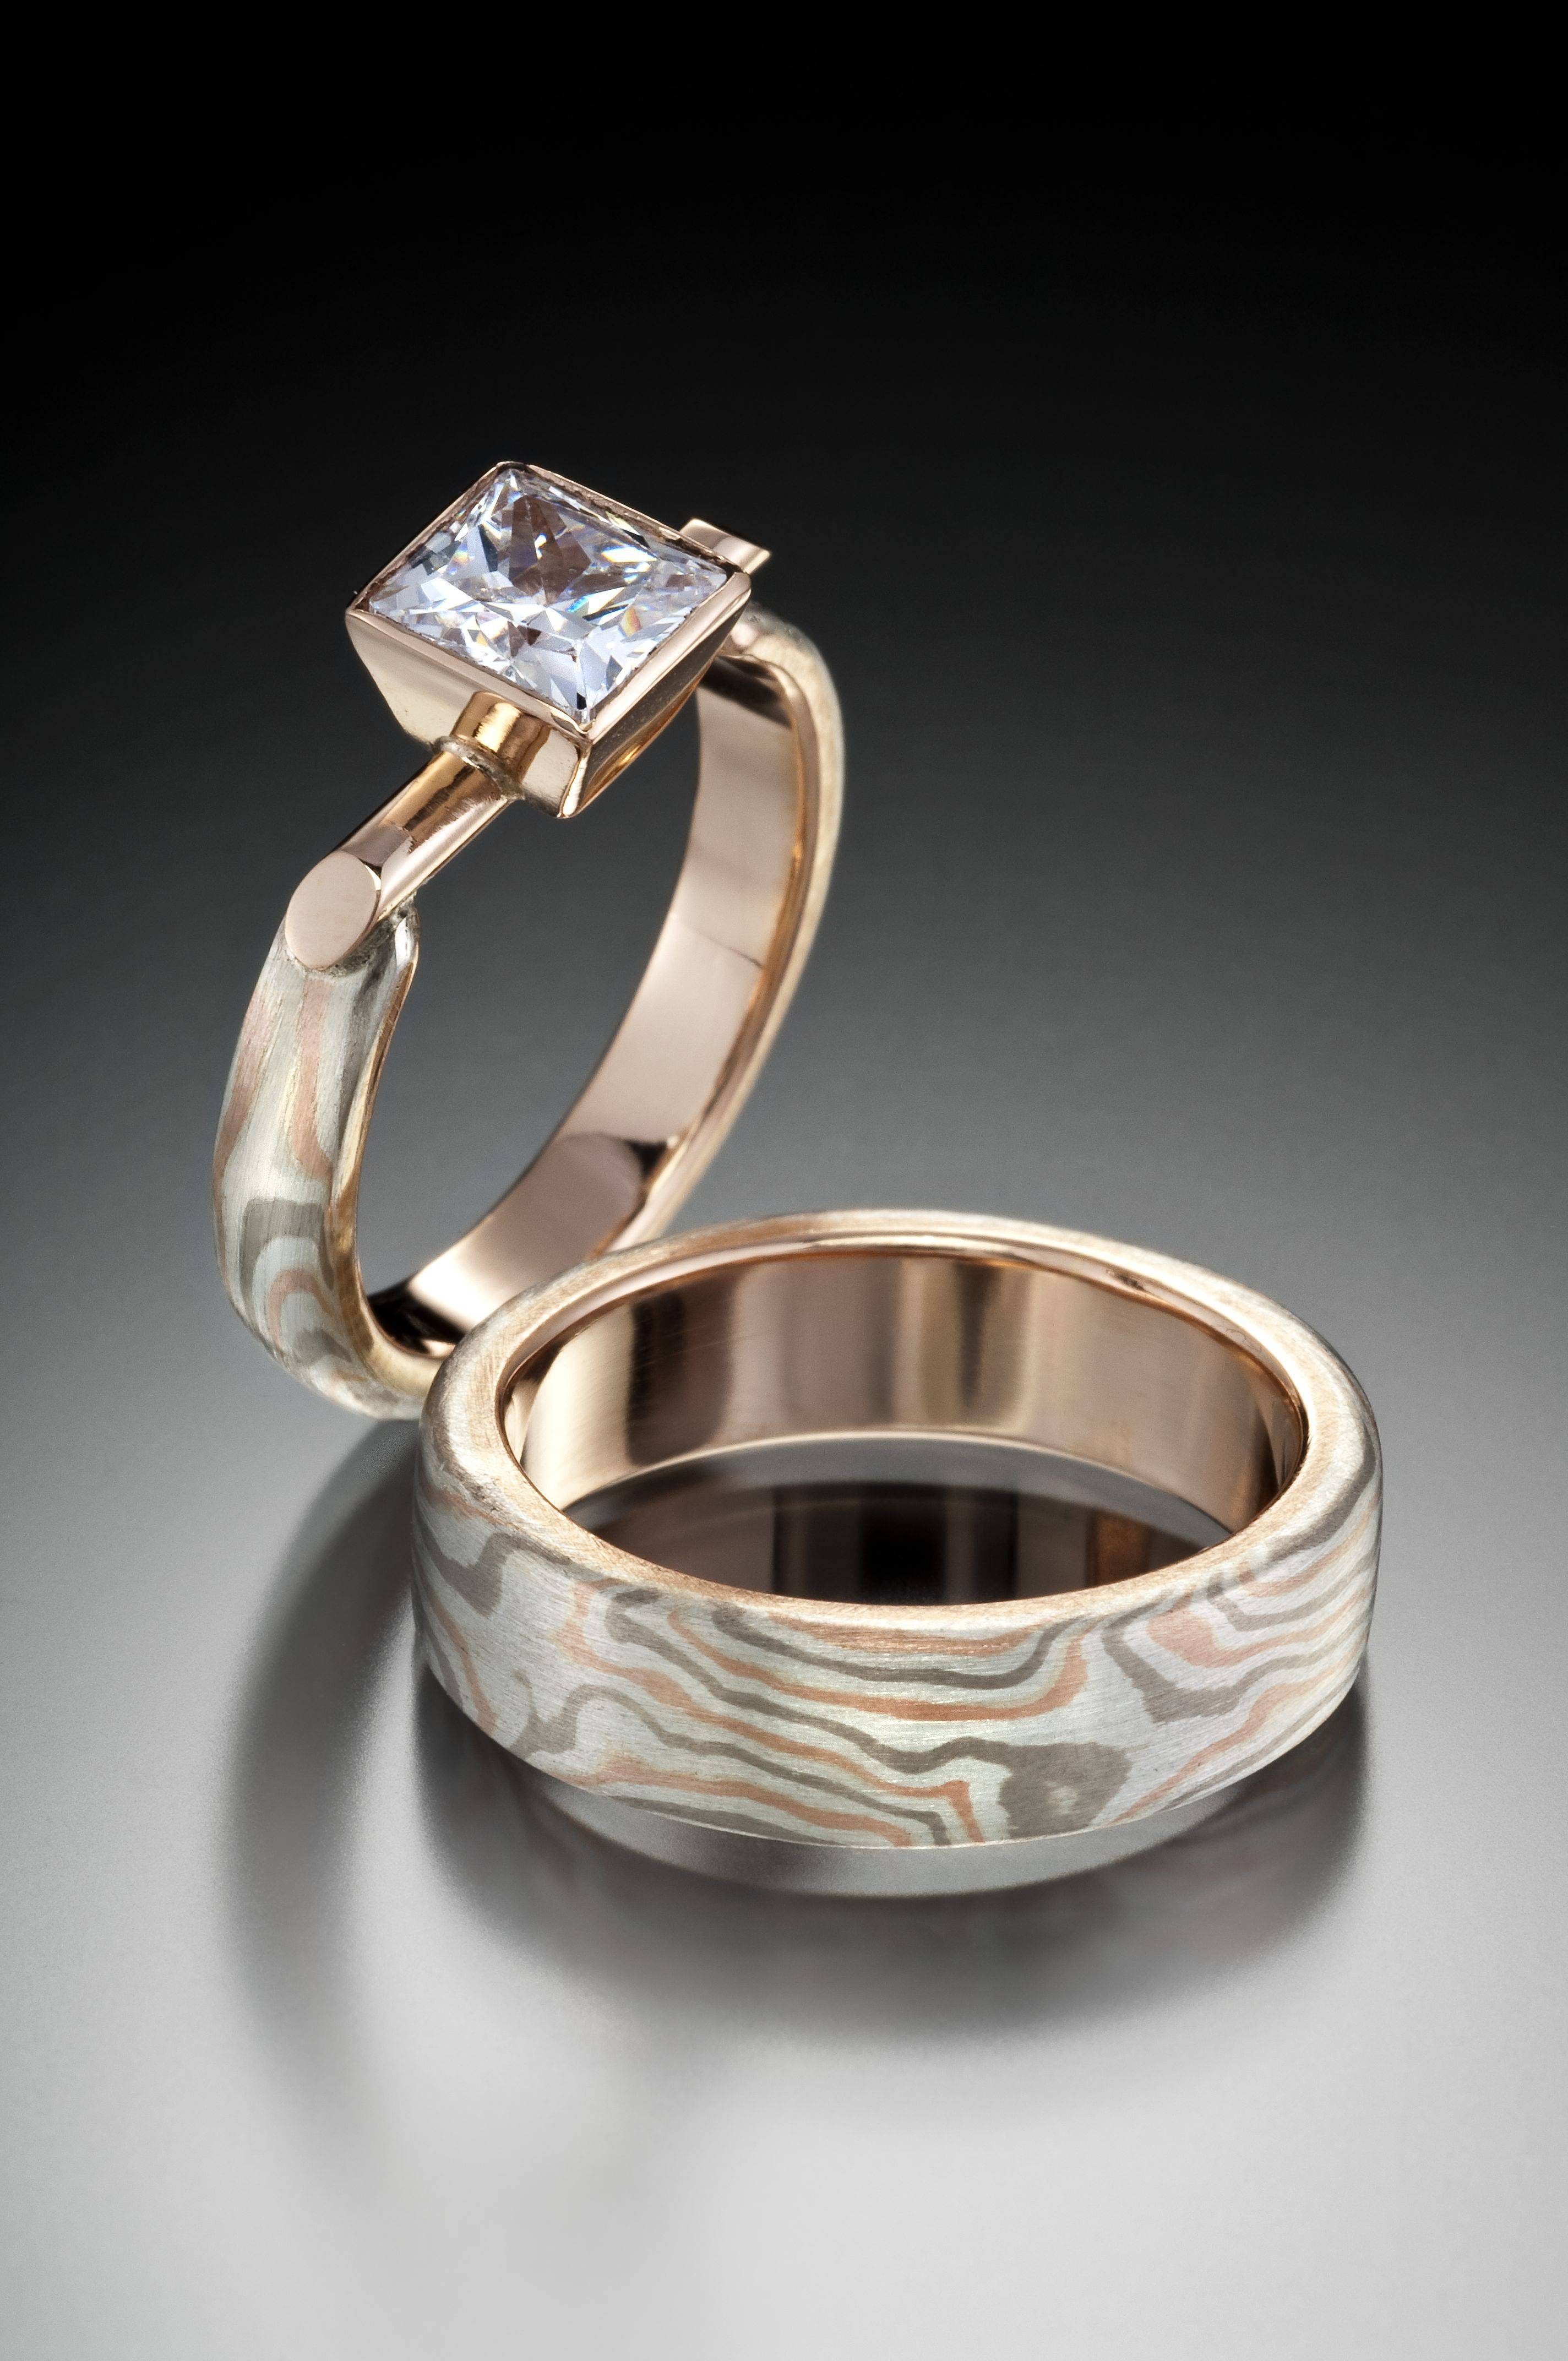 Modern Wedding Rings | Wedding Corners Within Contemporary Wedding Rings (View 3 of 15)